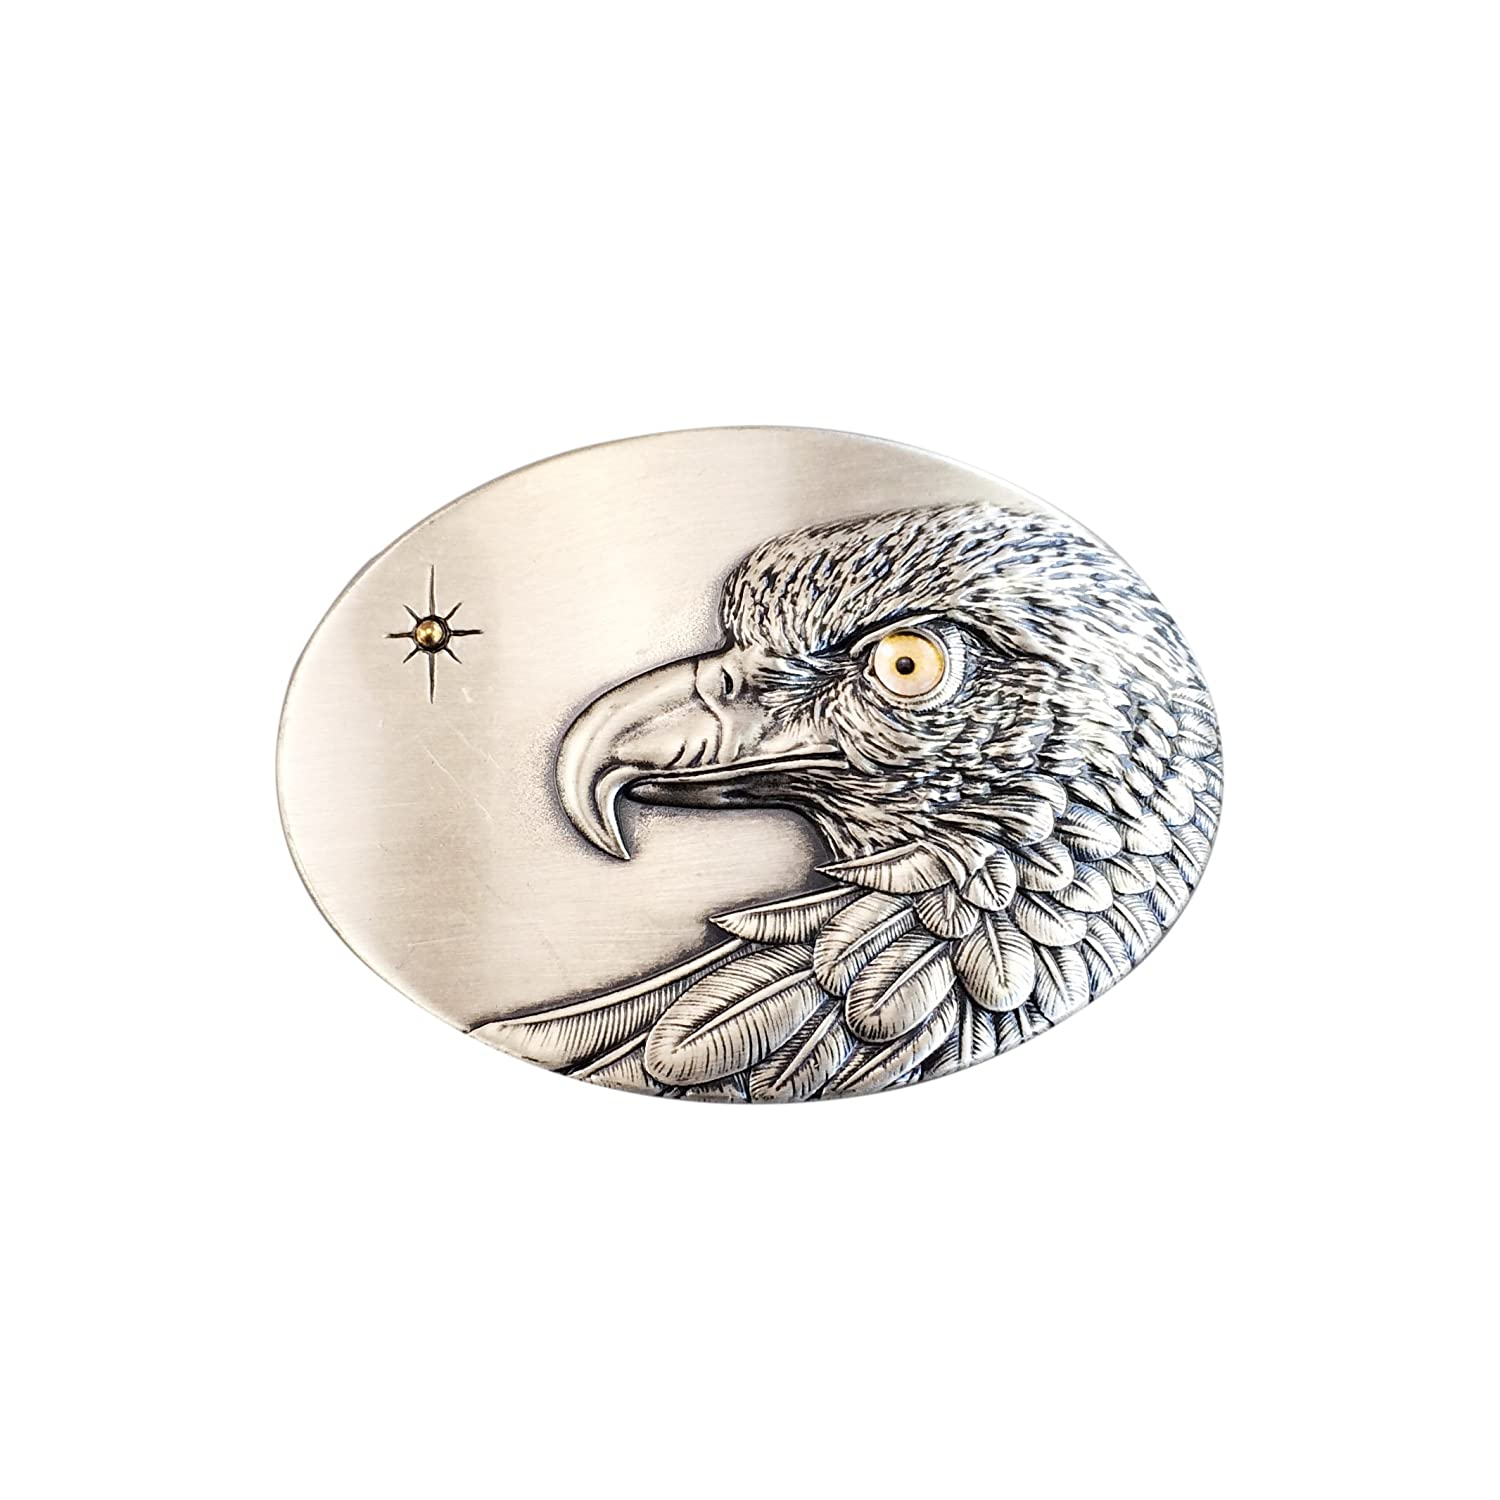 New Original Vintage Silver Plated Oval Sun Eagle Belt Buckle